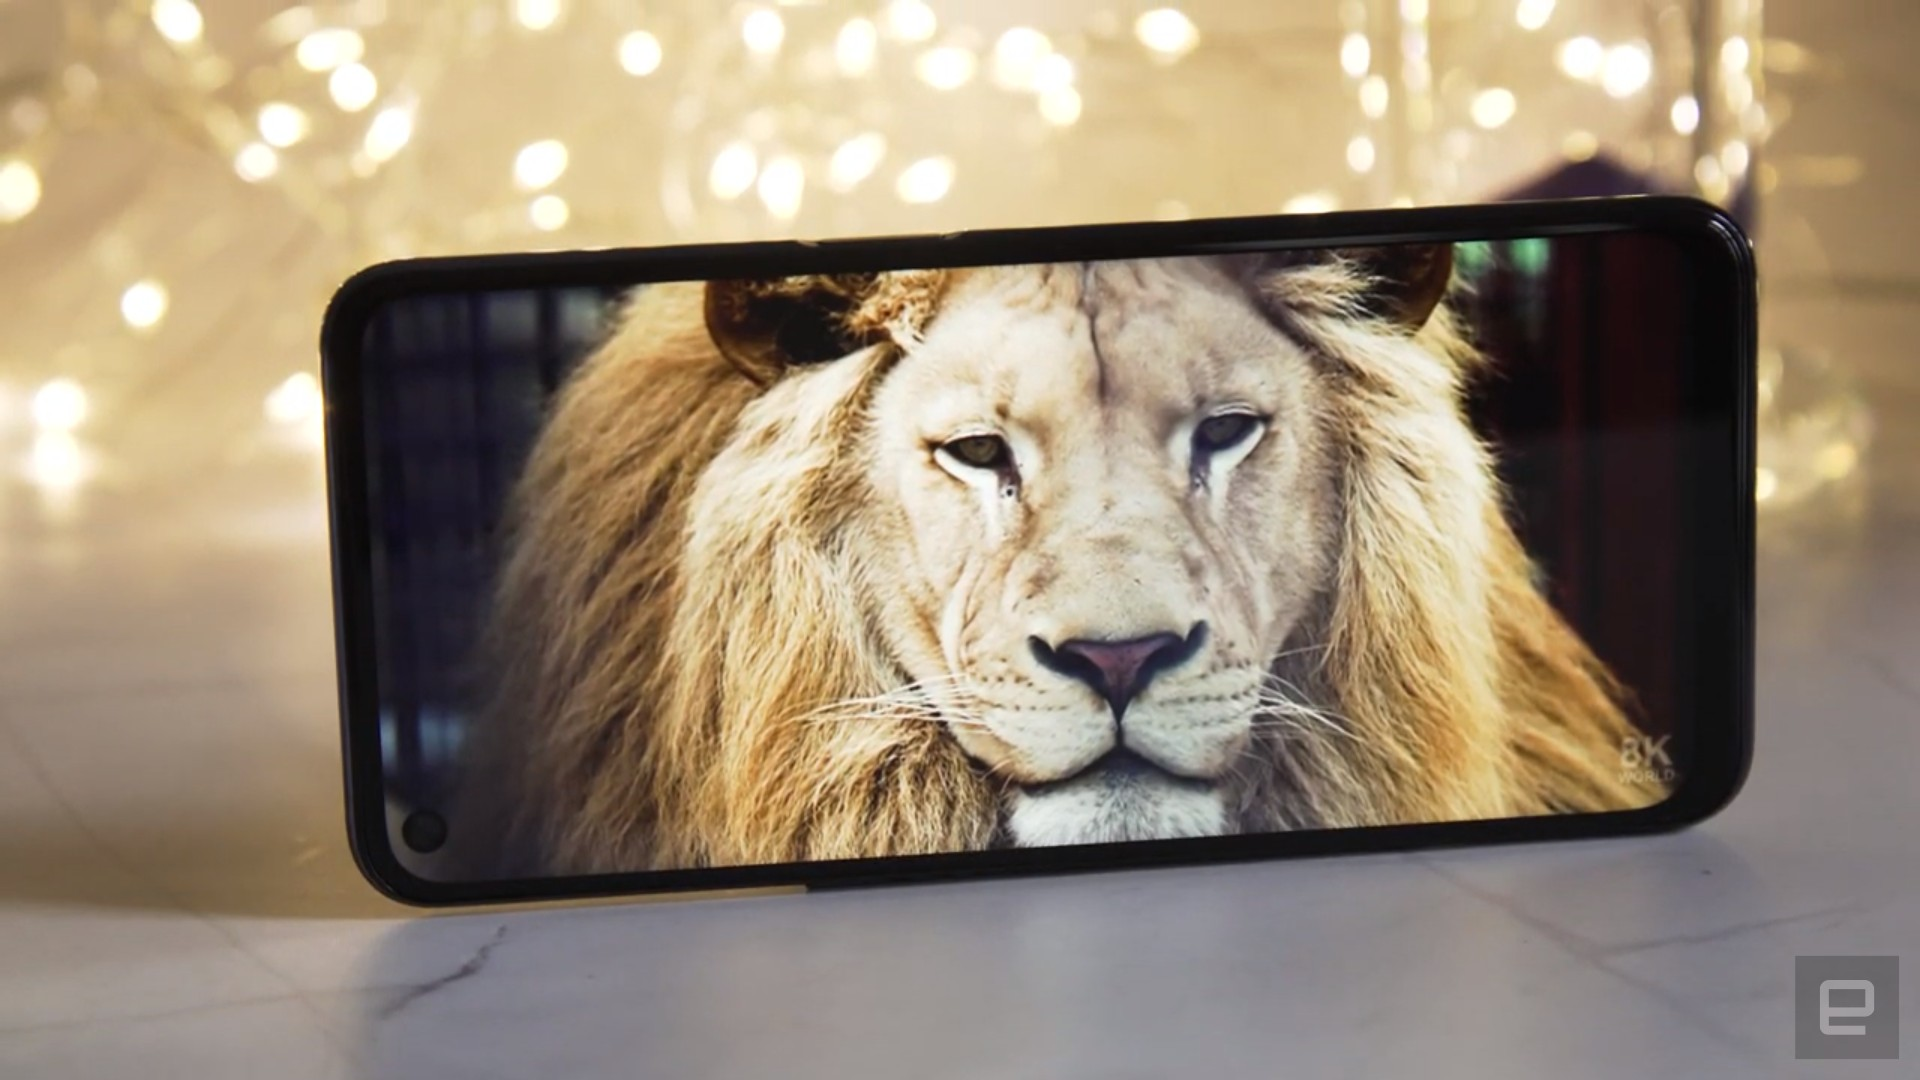 <p>OnePlus Nord N200 5G review picture. An image of a lion on the OnePlus Nord N200's 6.49-inch screen against a backdrop with fairy lights.</p>